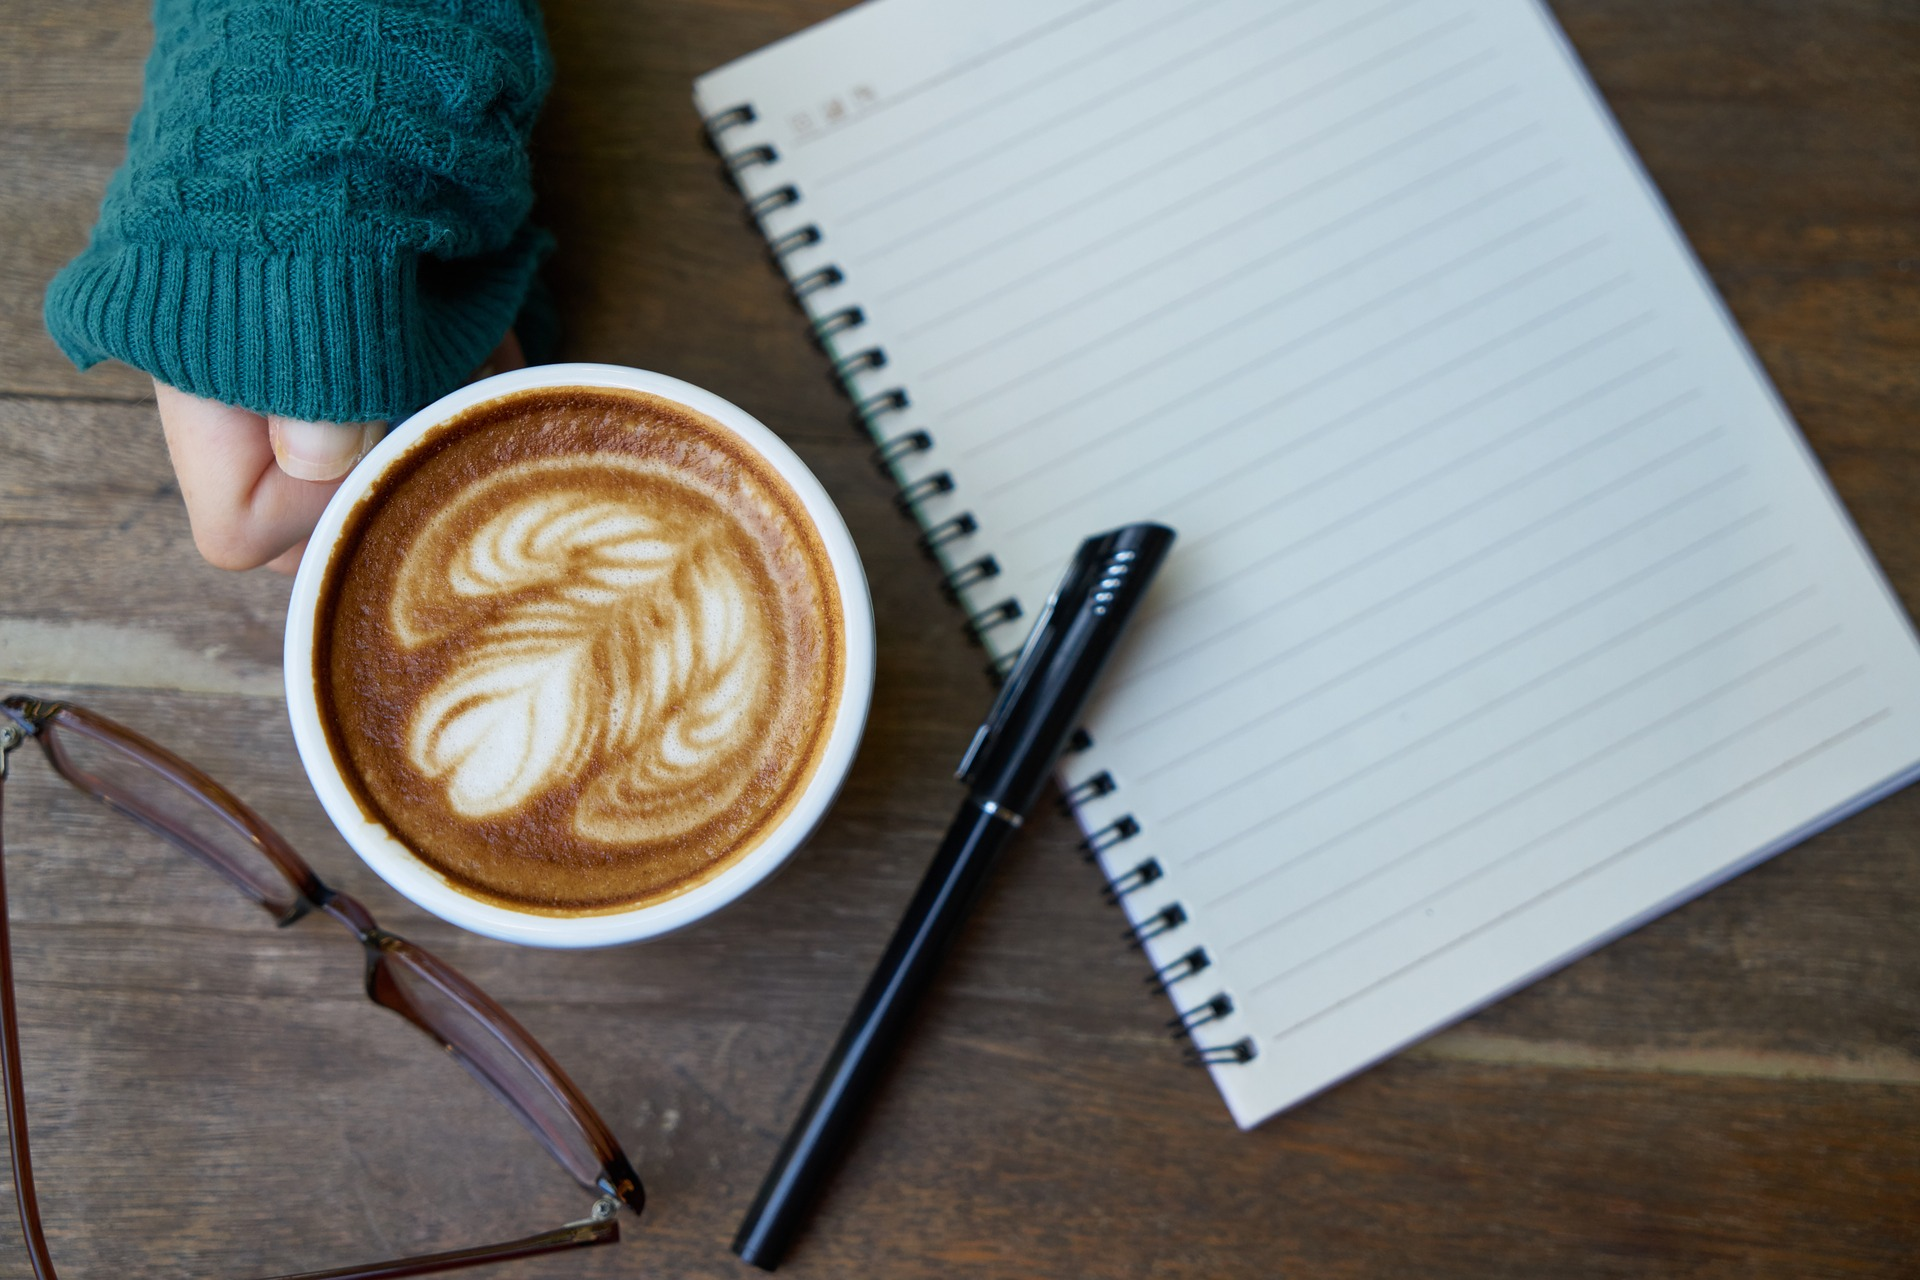 coffee cup, pen, journal, and eyeglasses